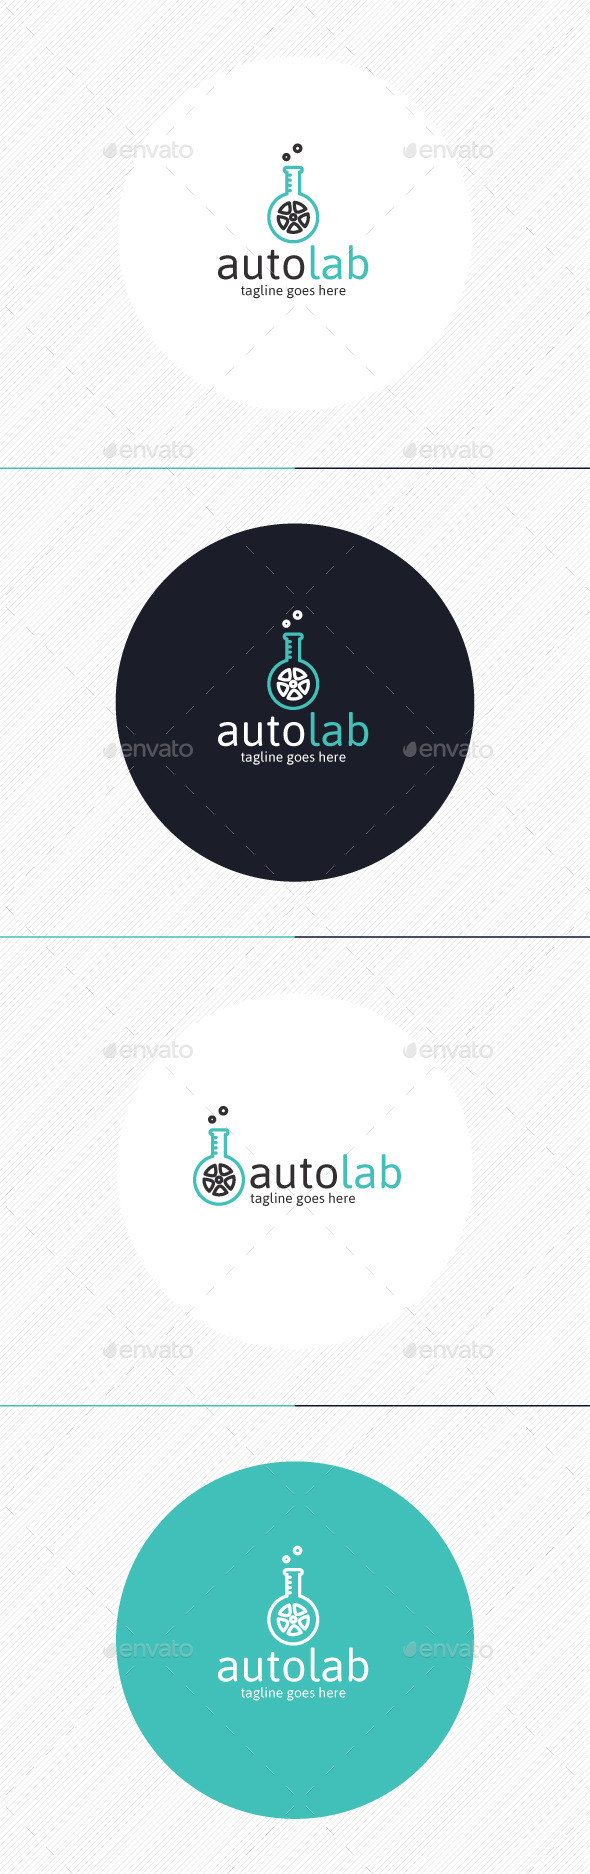 GraphicRiver Auto Lab Logo 9859580